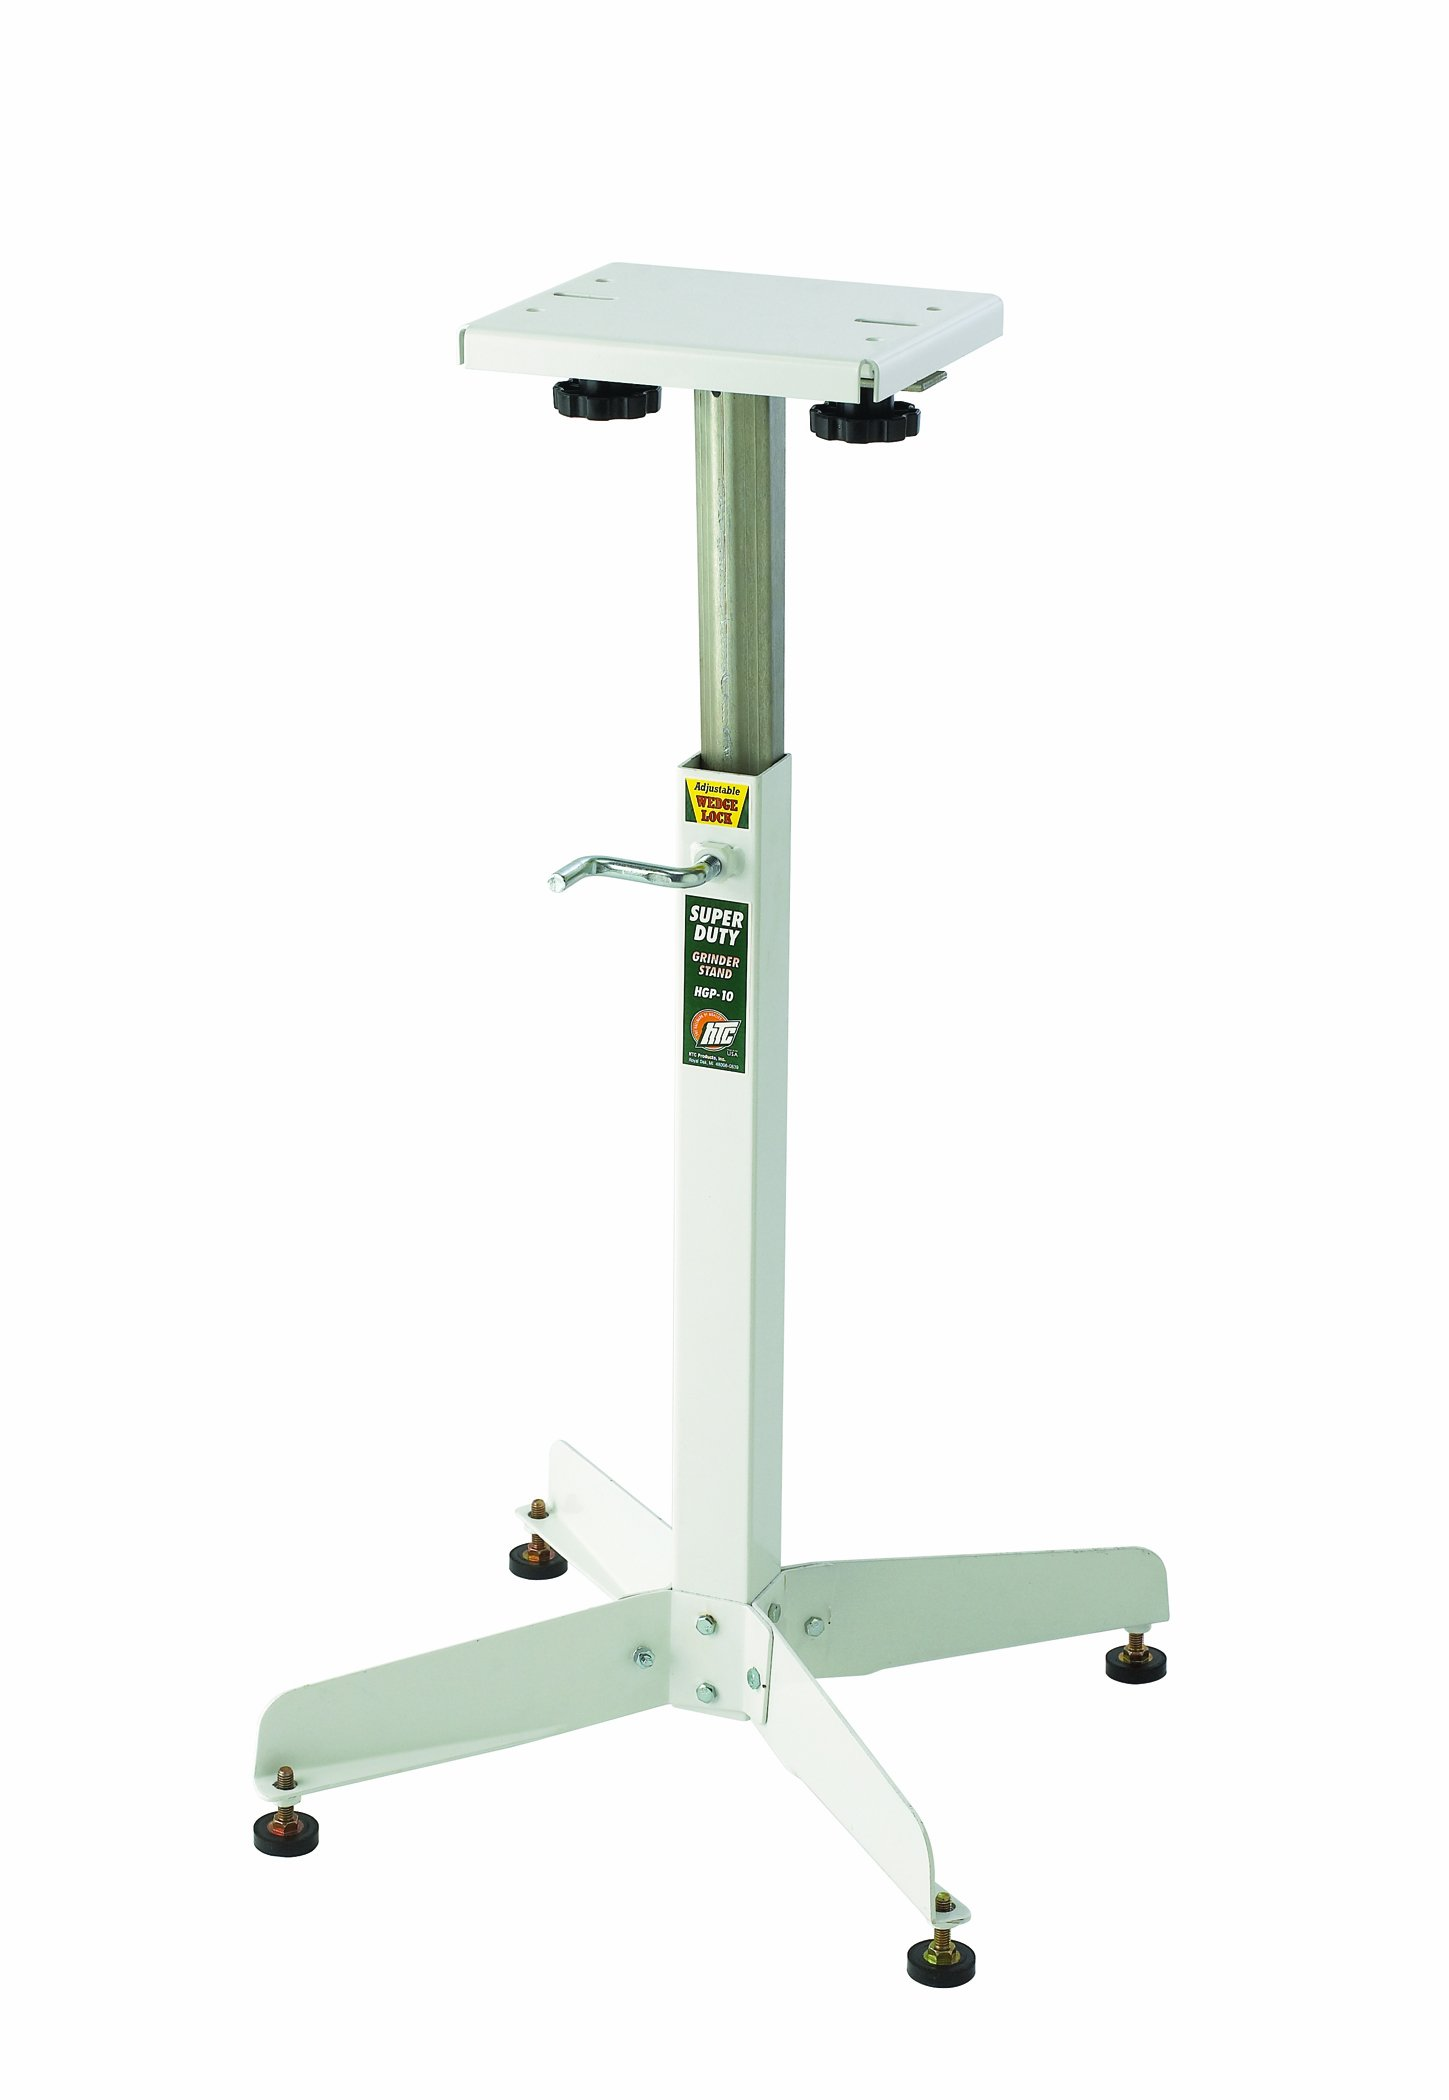 Bench Grinder Stand HTC HGP-10 Adjustable Bench Top Grinder Stand That has Rock Solid Stability by HTC